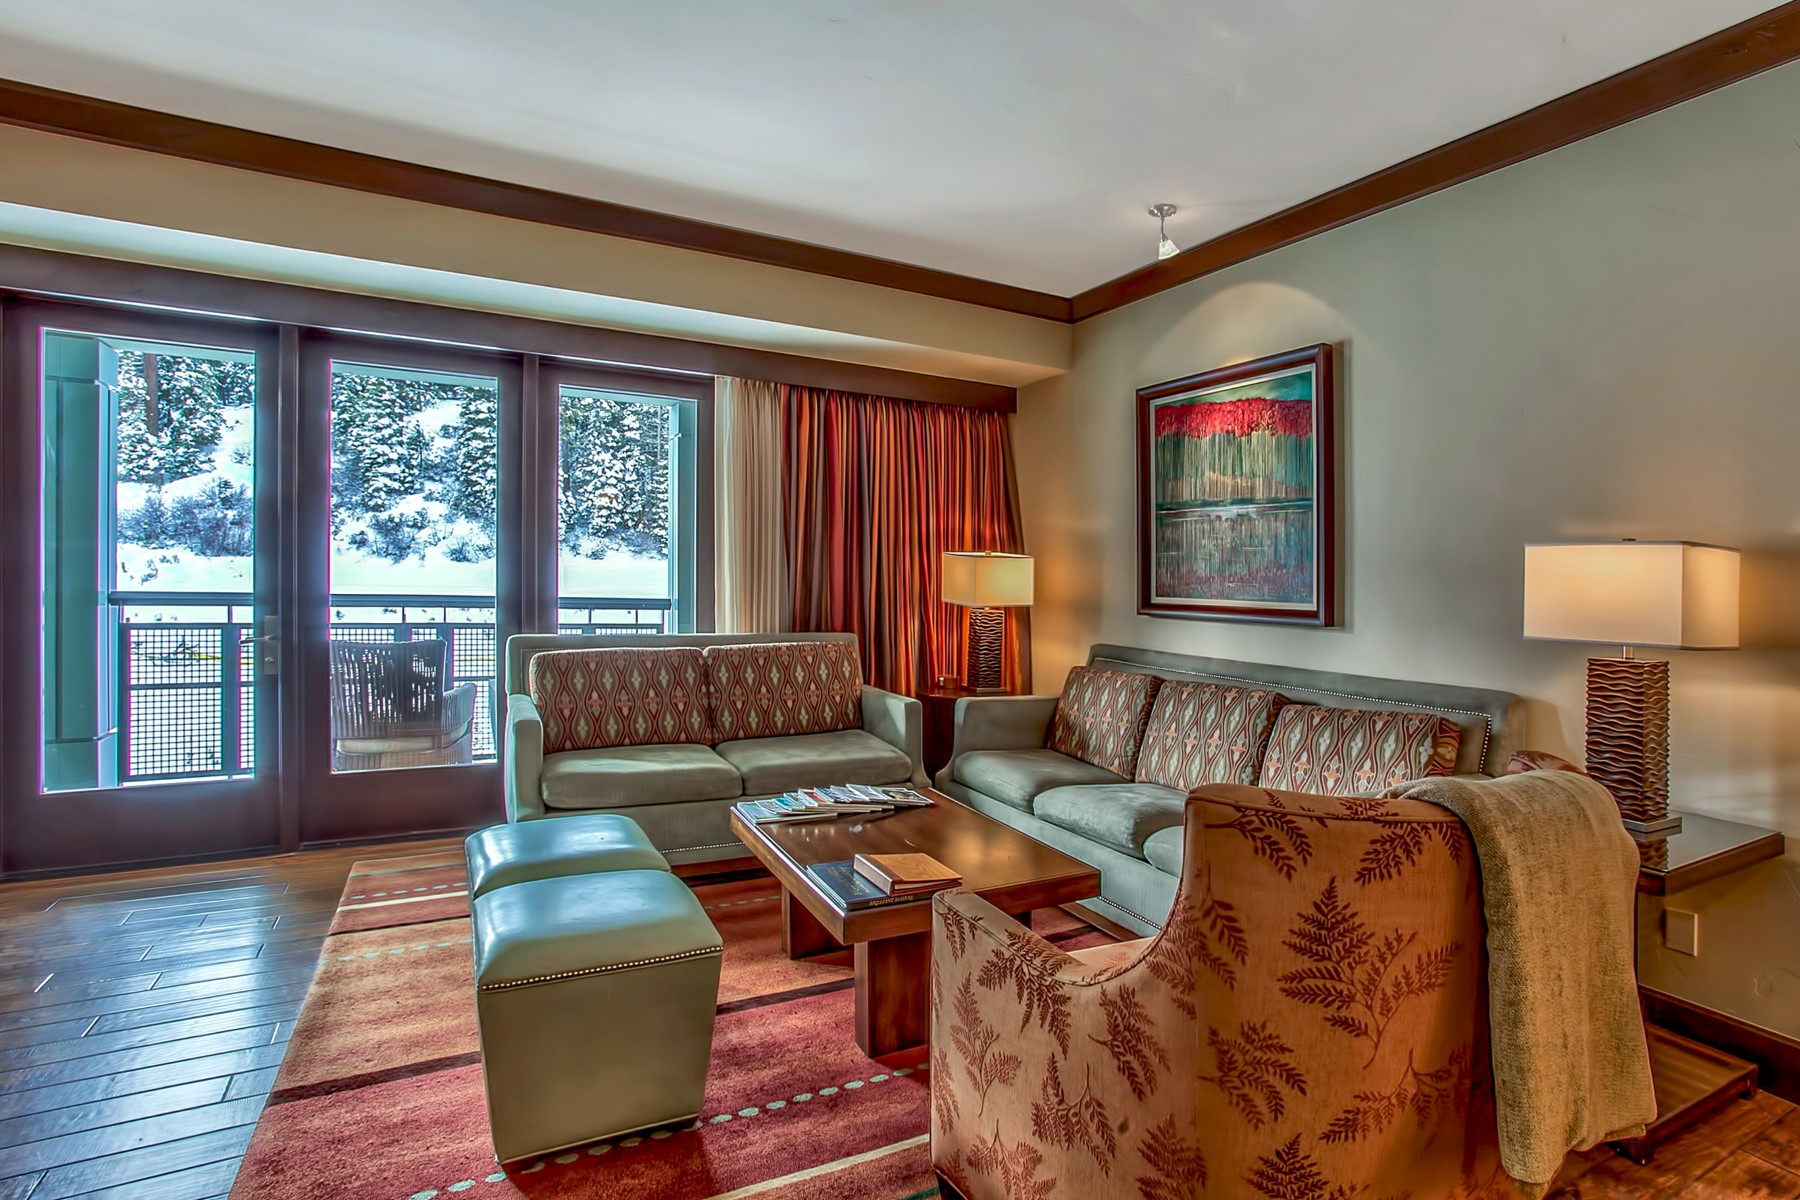 Additional photo for property listing at Ritz-Carlton Destination Club - Lake Tahoe at 13051 Ritz Carlton Highlands 4405 13051 Ritz-Carlton Highlands # 4405 Truckee, California 96161 Estados Unidos